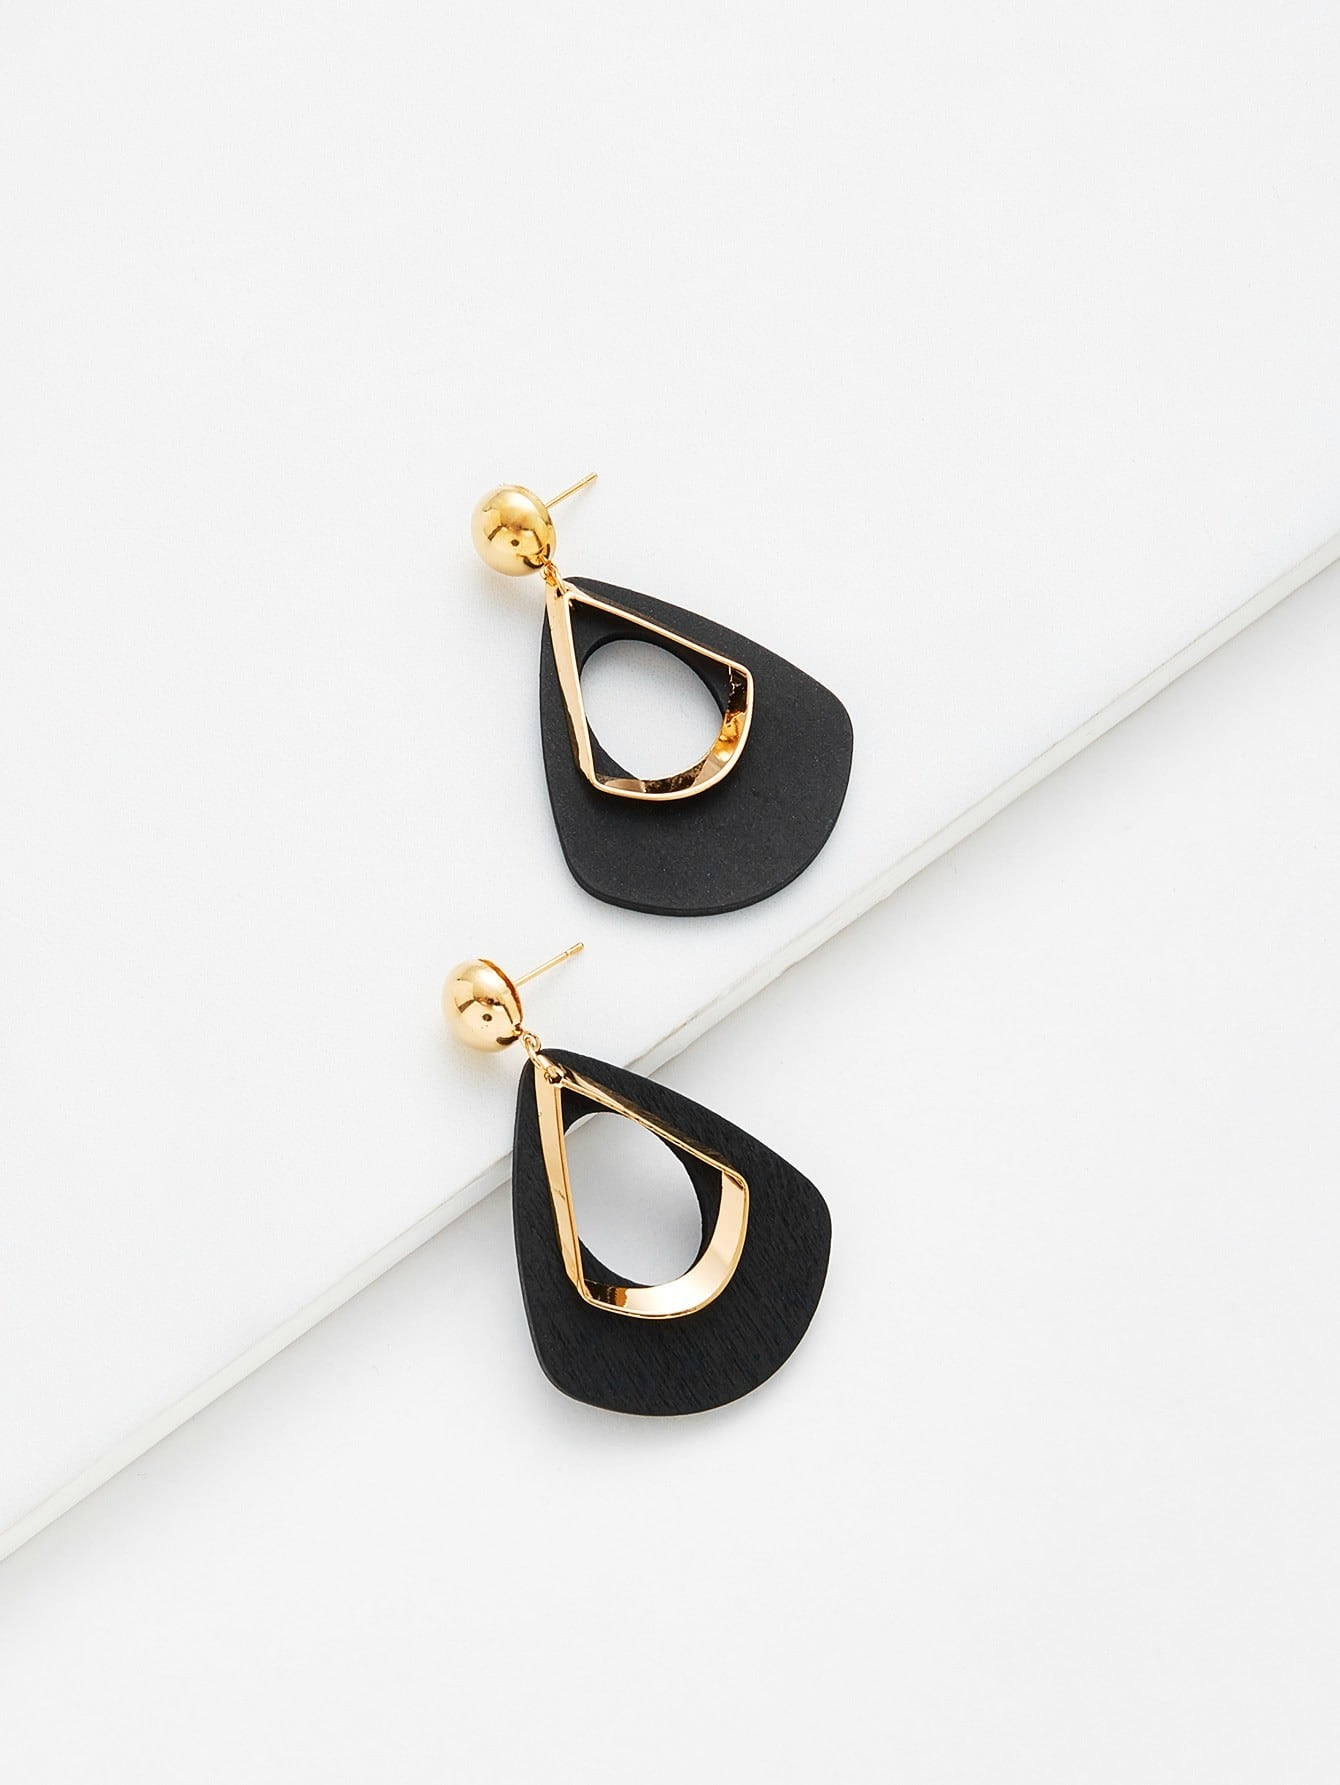 Hollow Water Drop Shaped Drop Earrings aluminum alloy water drop shaped cake